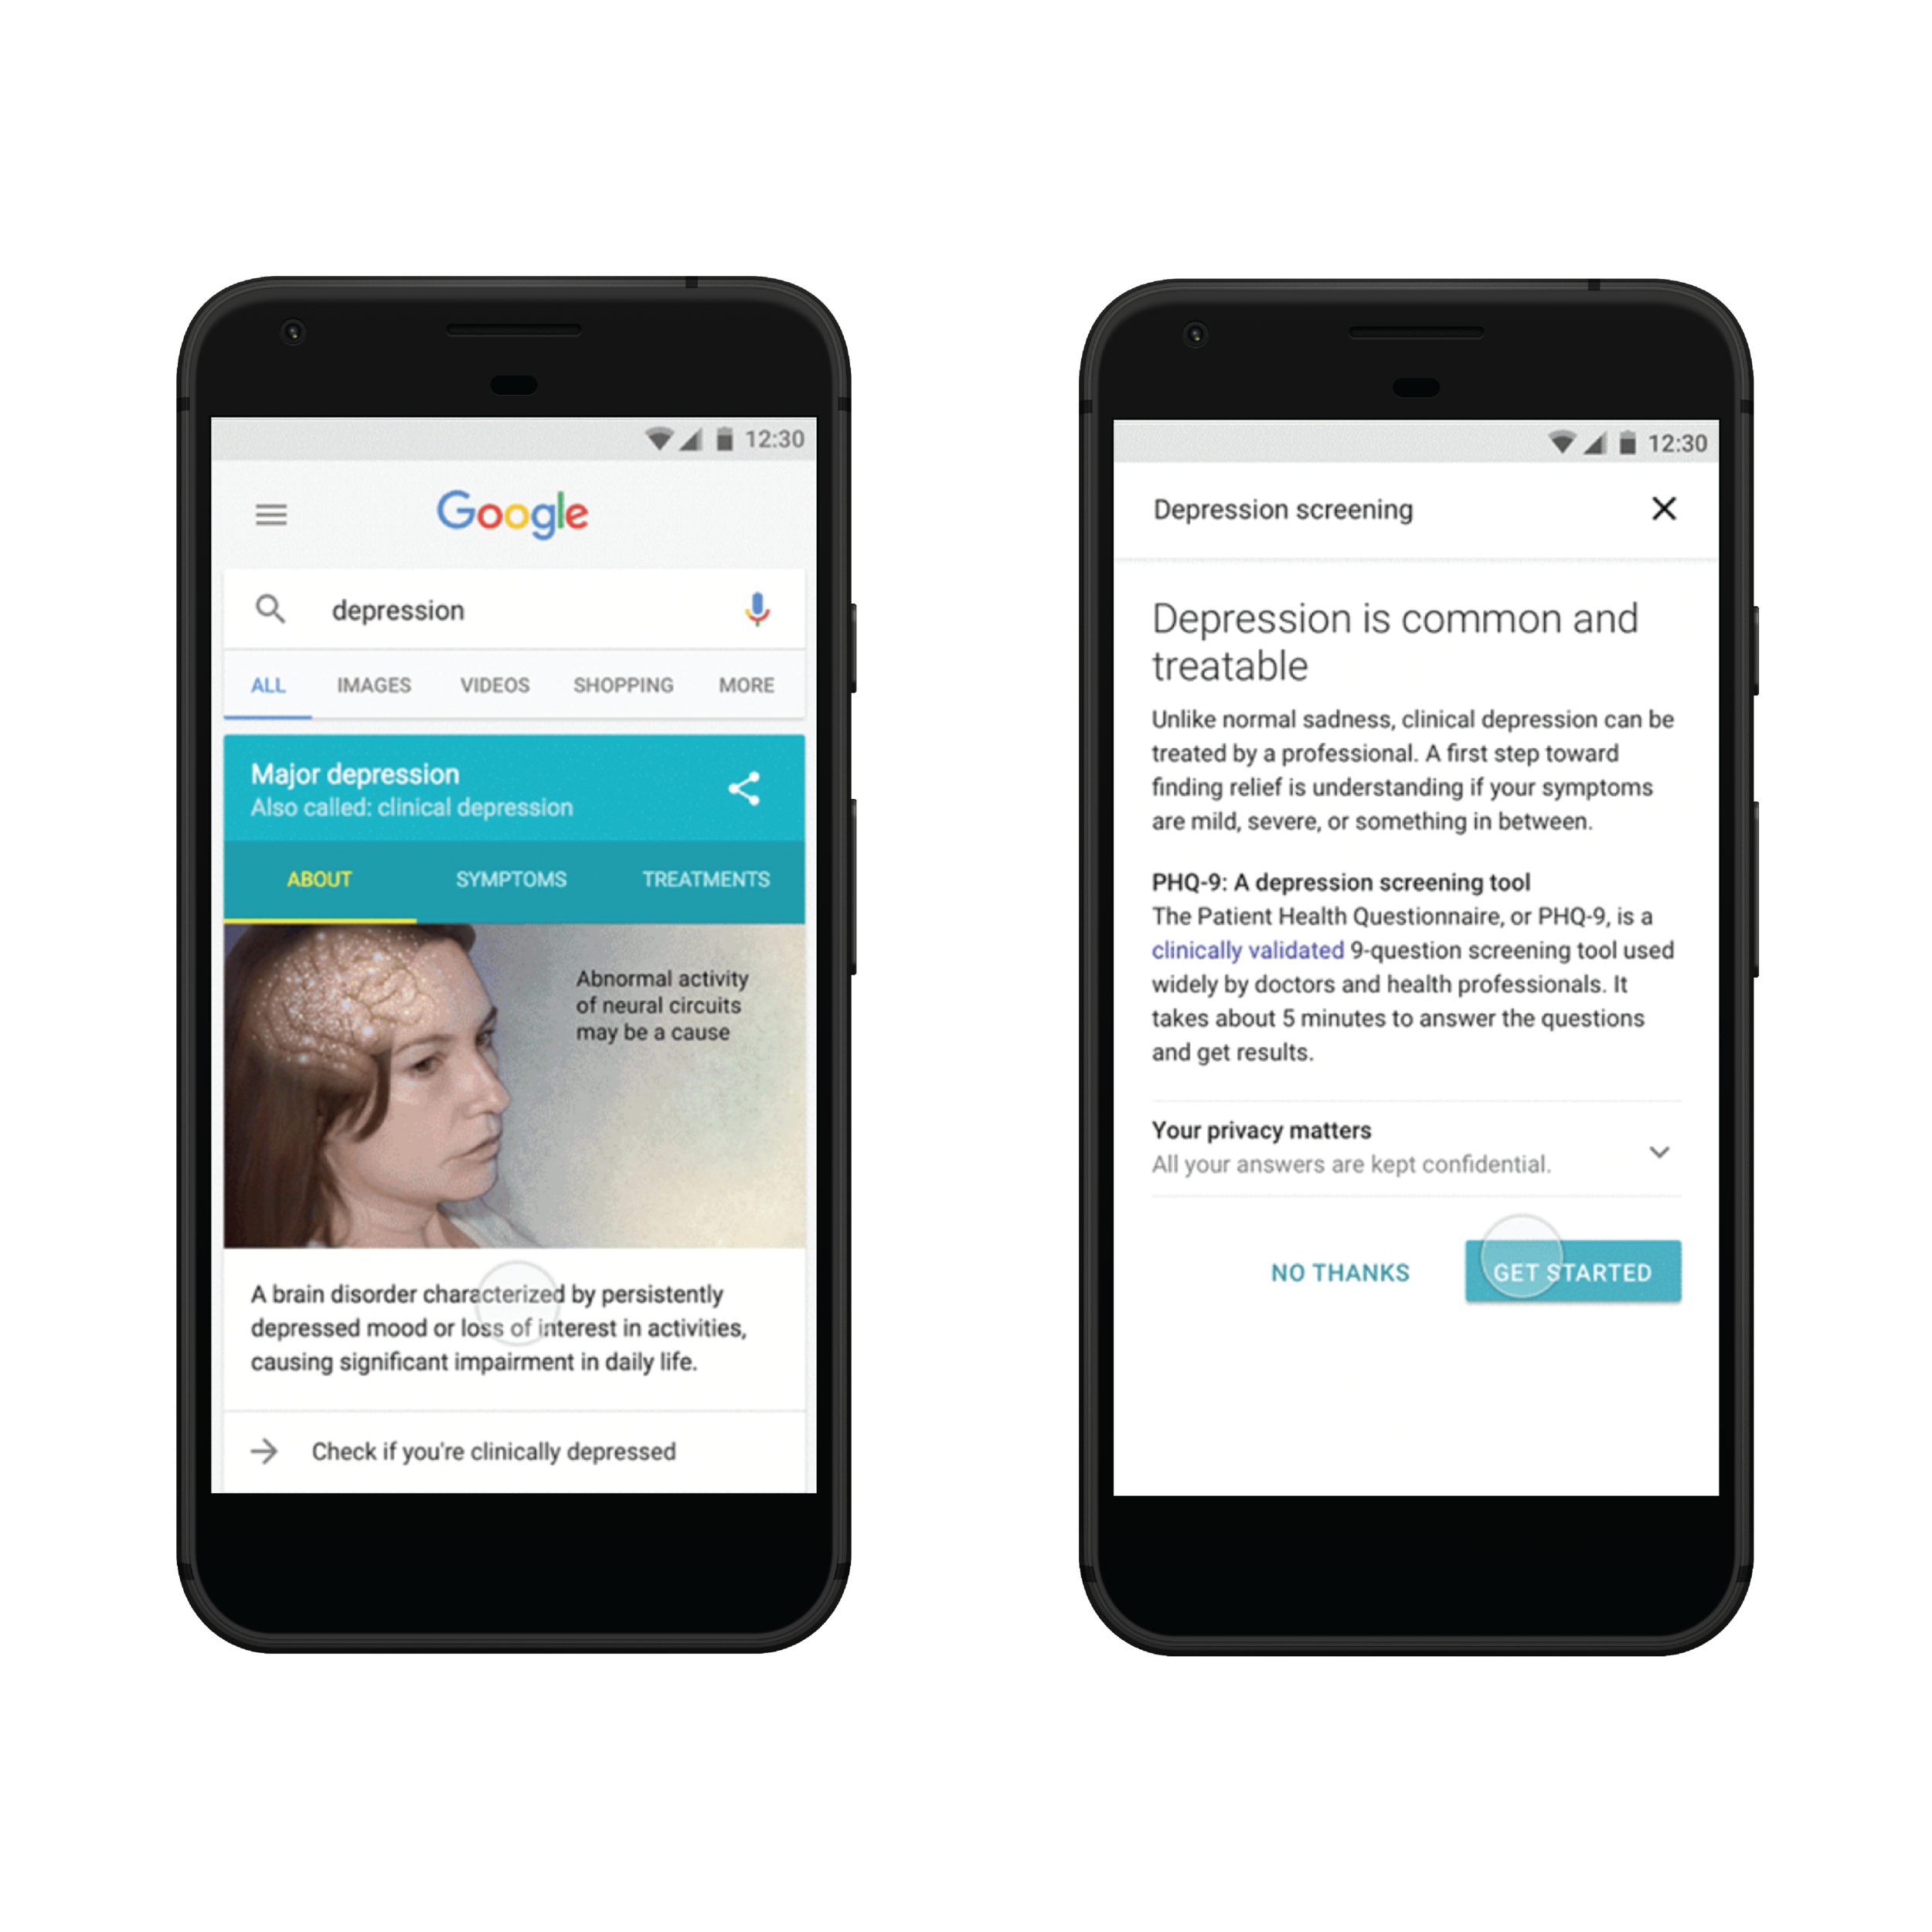 Screenshots from Google's current Health Card for major depression. Currently, postpartum depression does not have it's own dedicated knowledge graph.